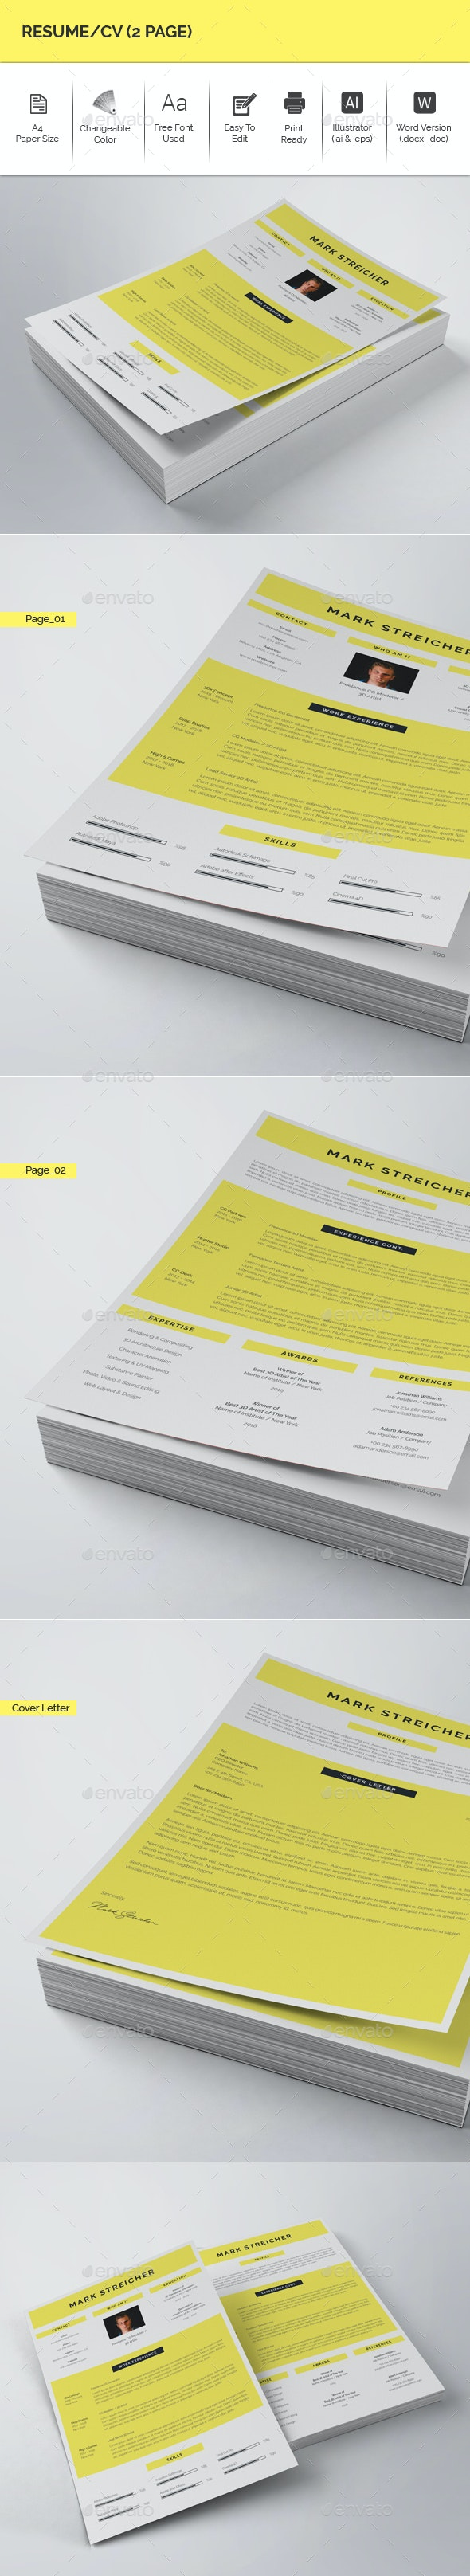 Resume/CV (2 Page) - Resumes Stationery